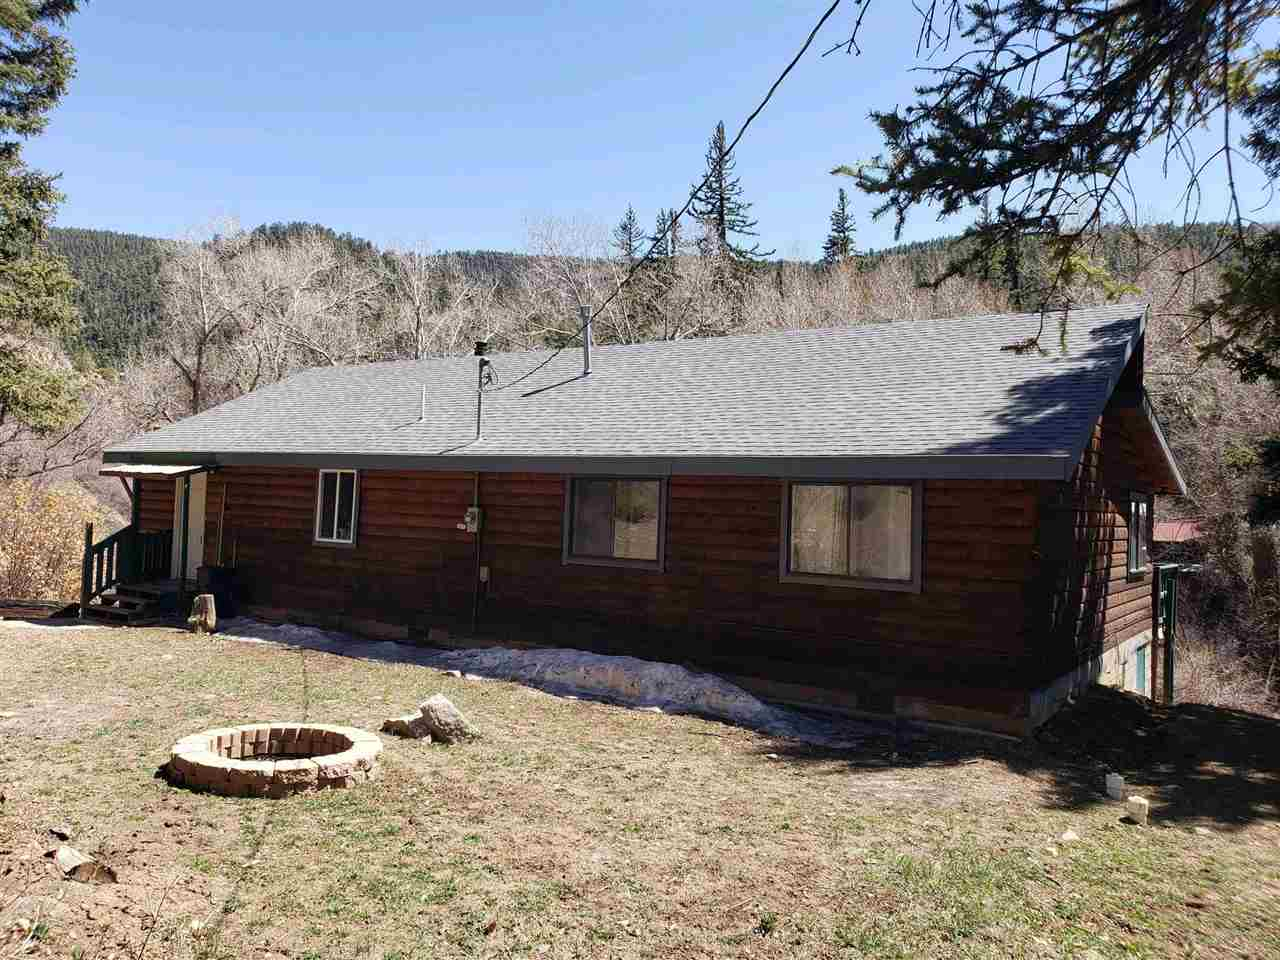 26451 Hwy 64, Taos Canyon, NM 87571